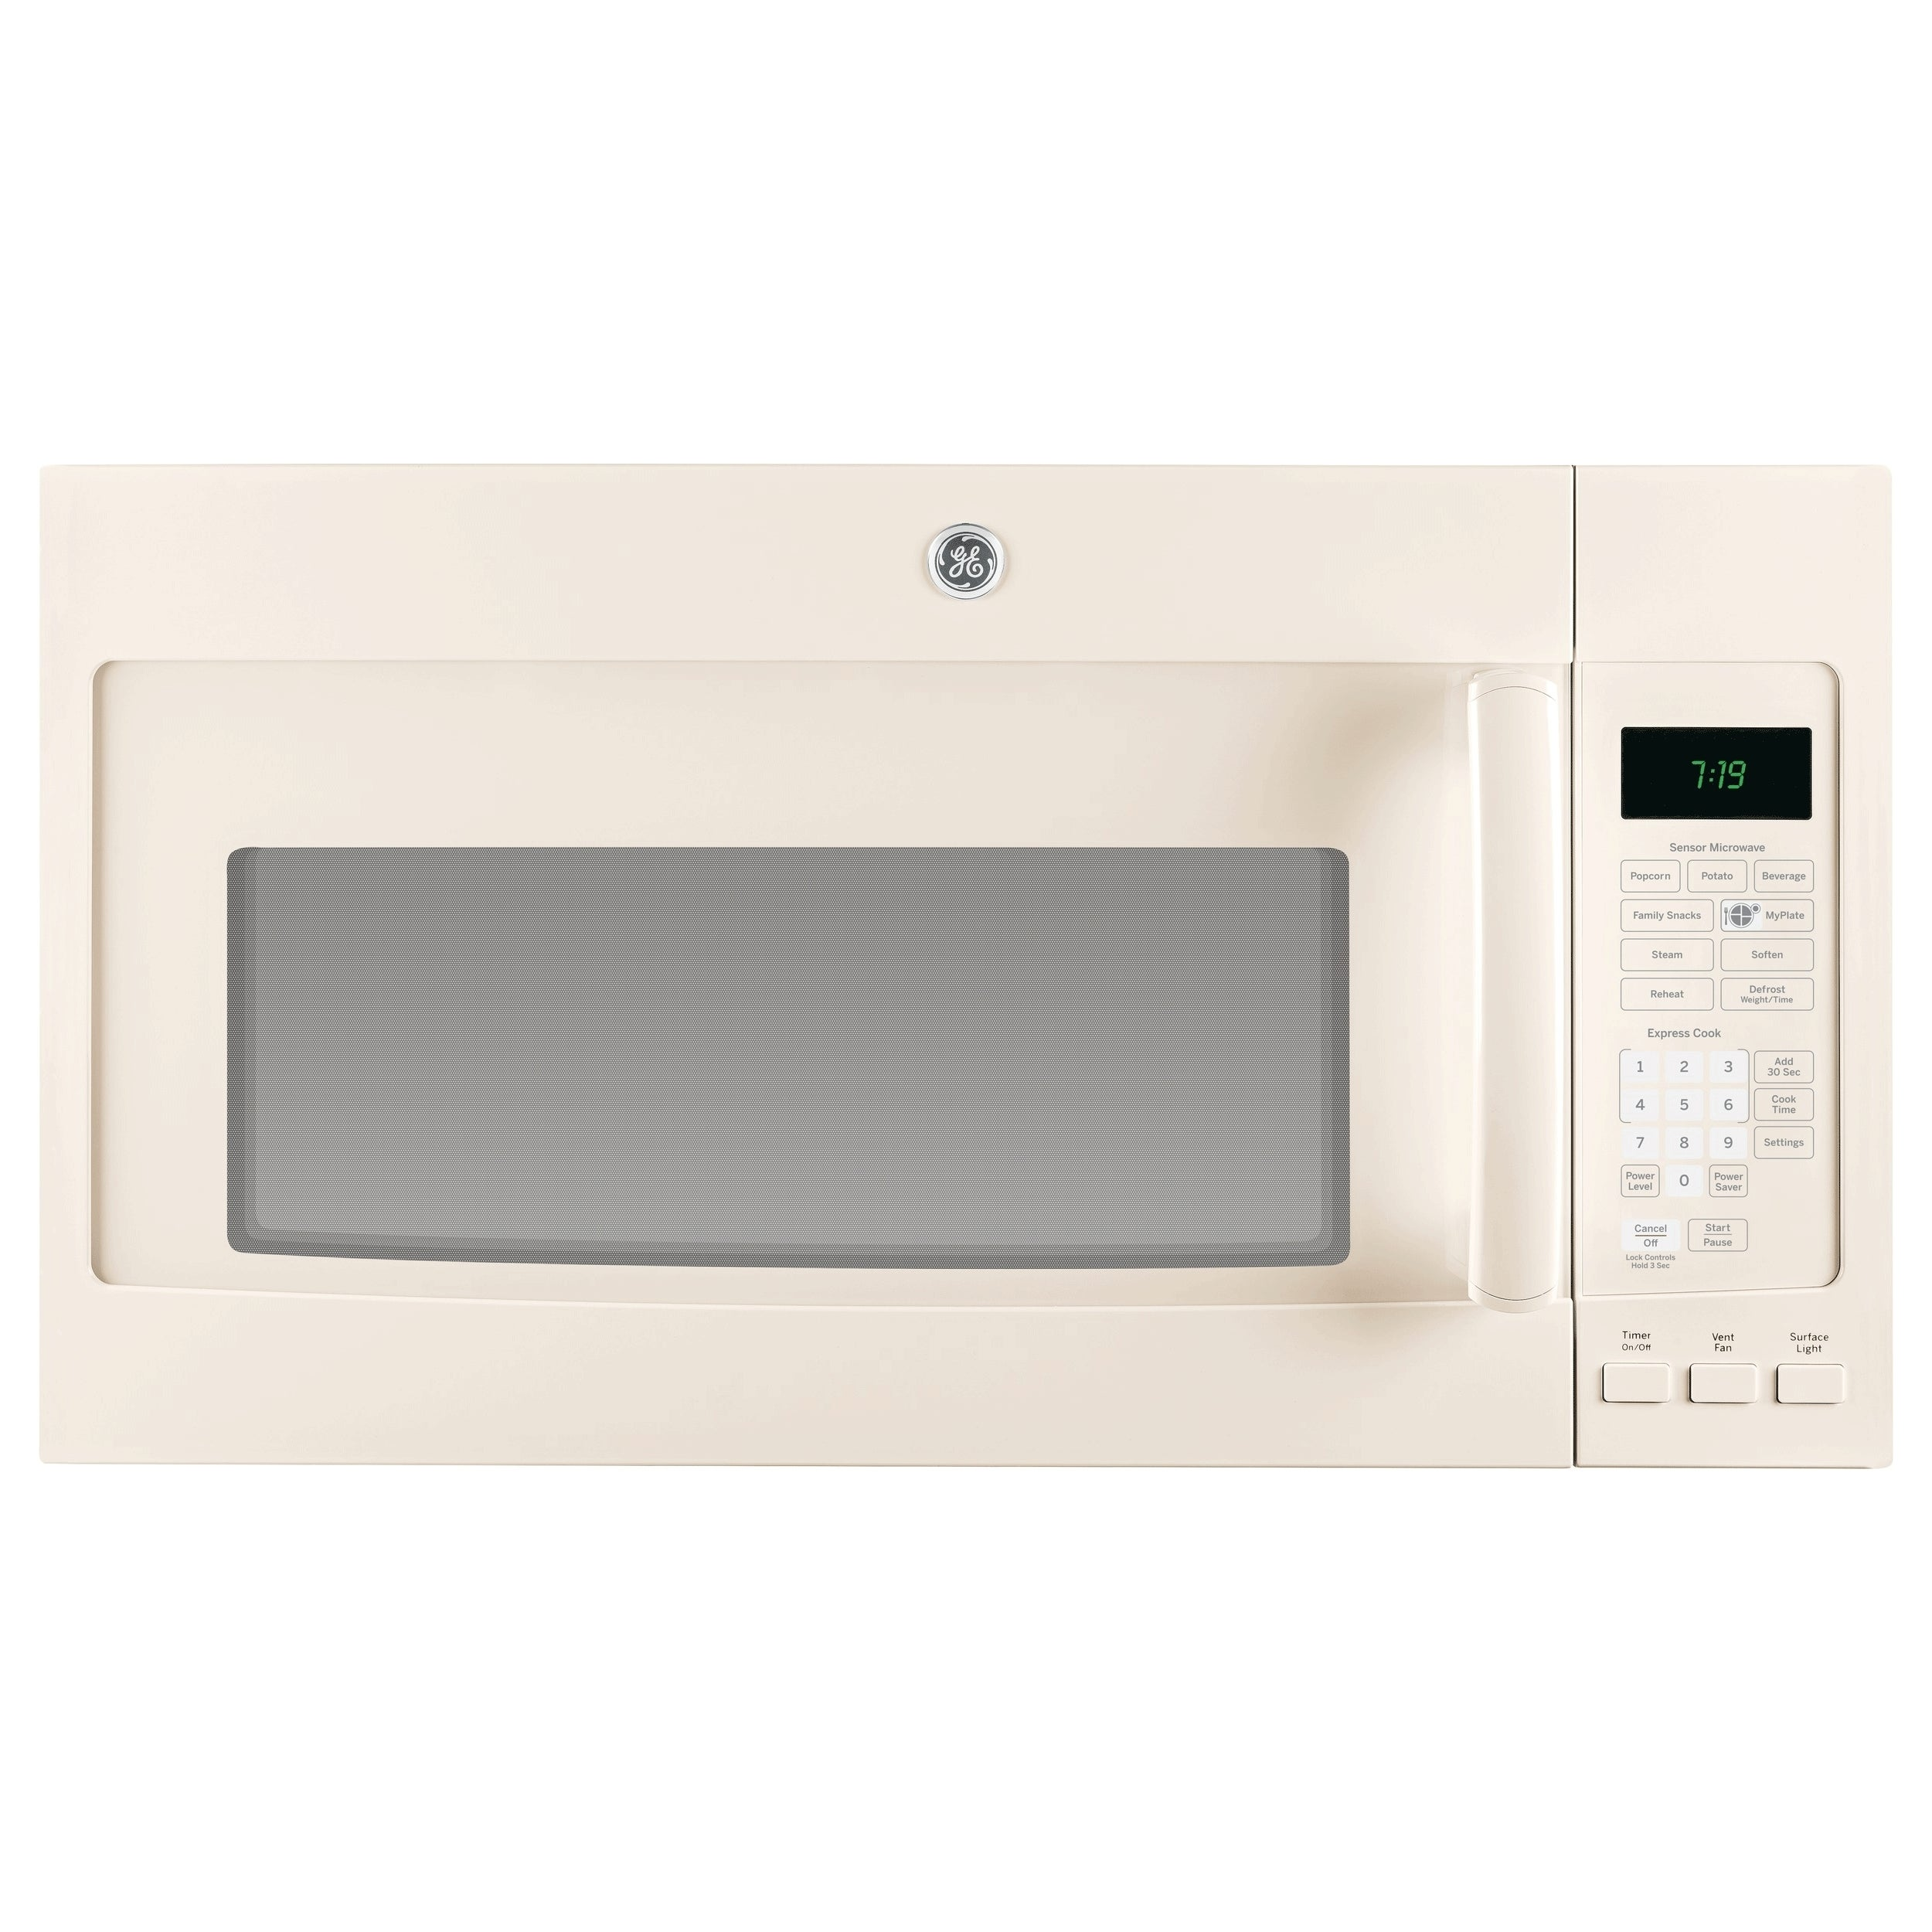 Bisque Colored Countertop Microwave Ovensbestmicrowave